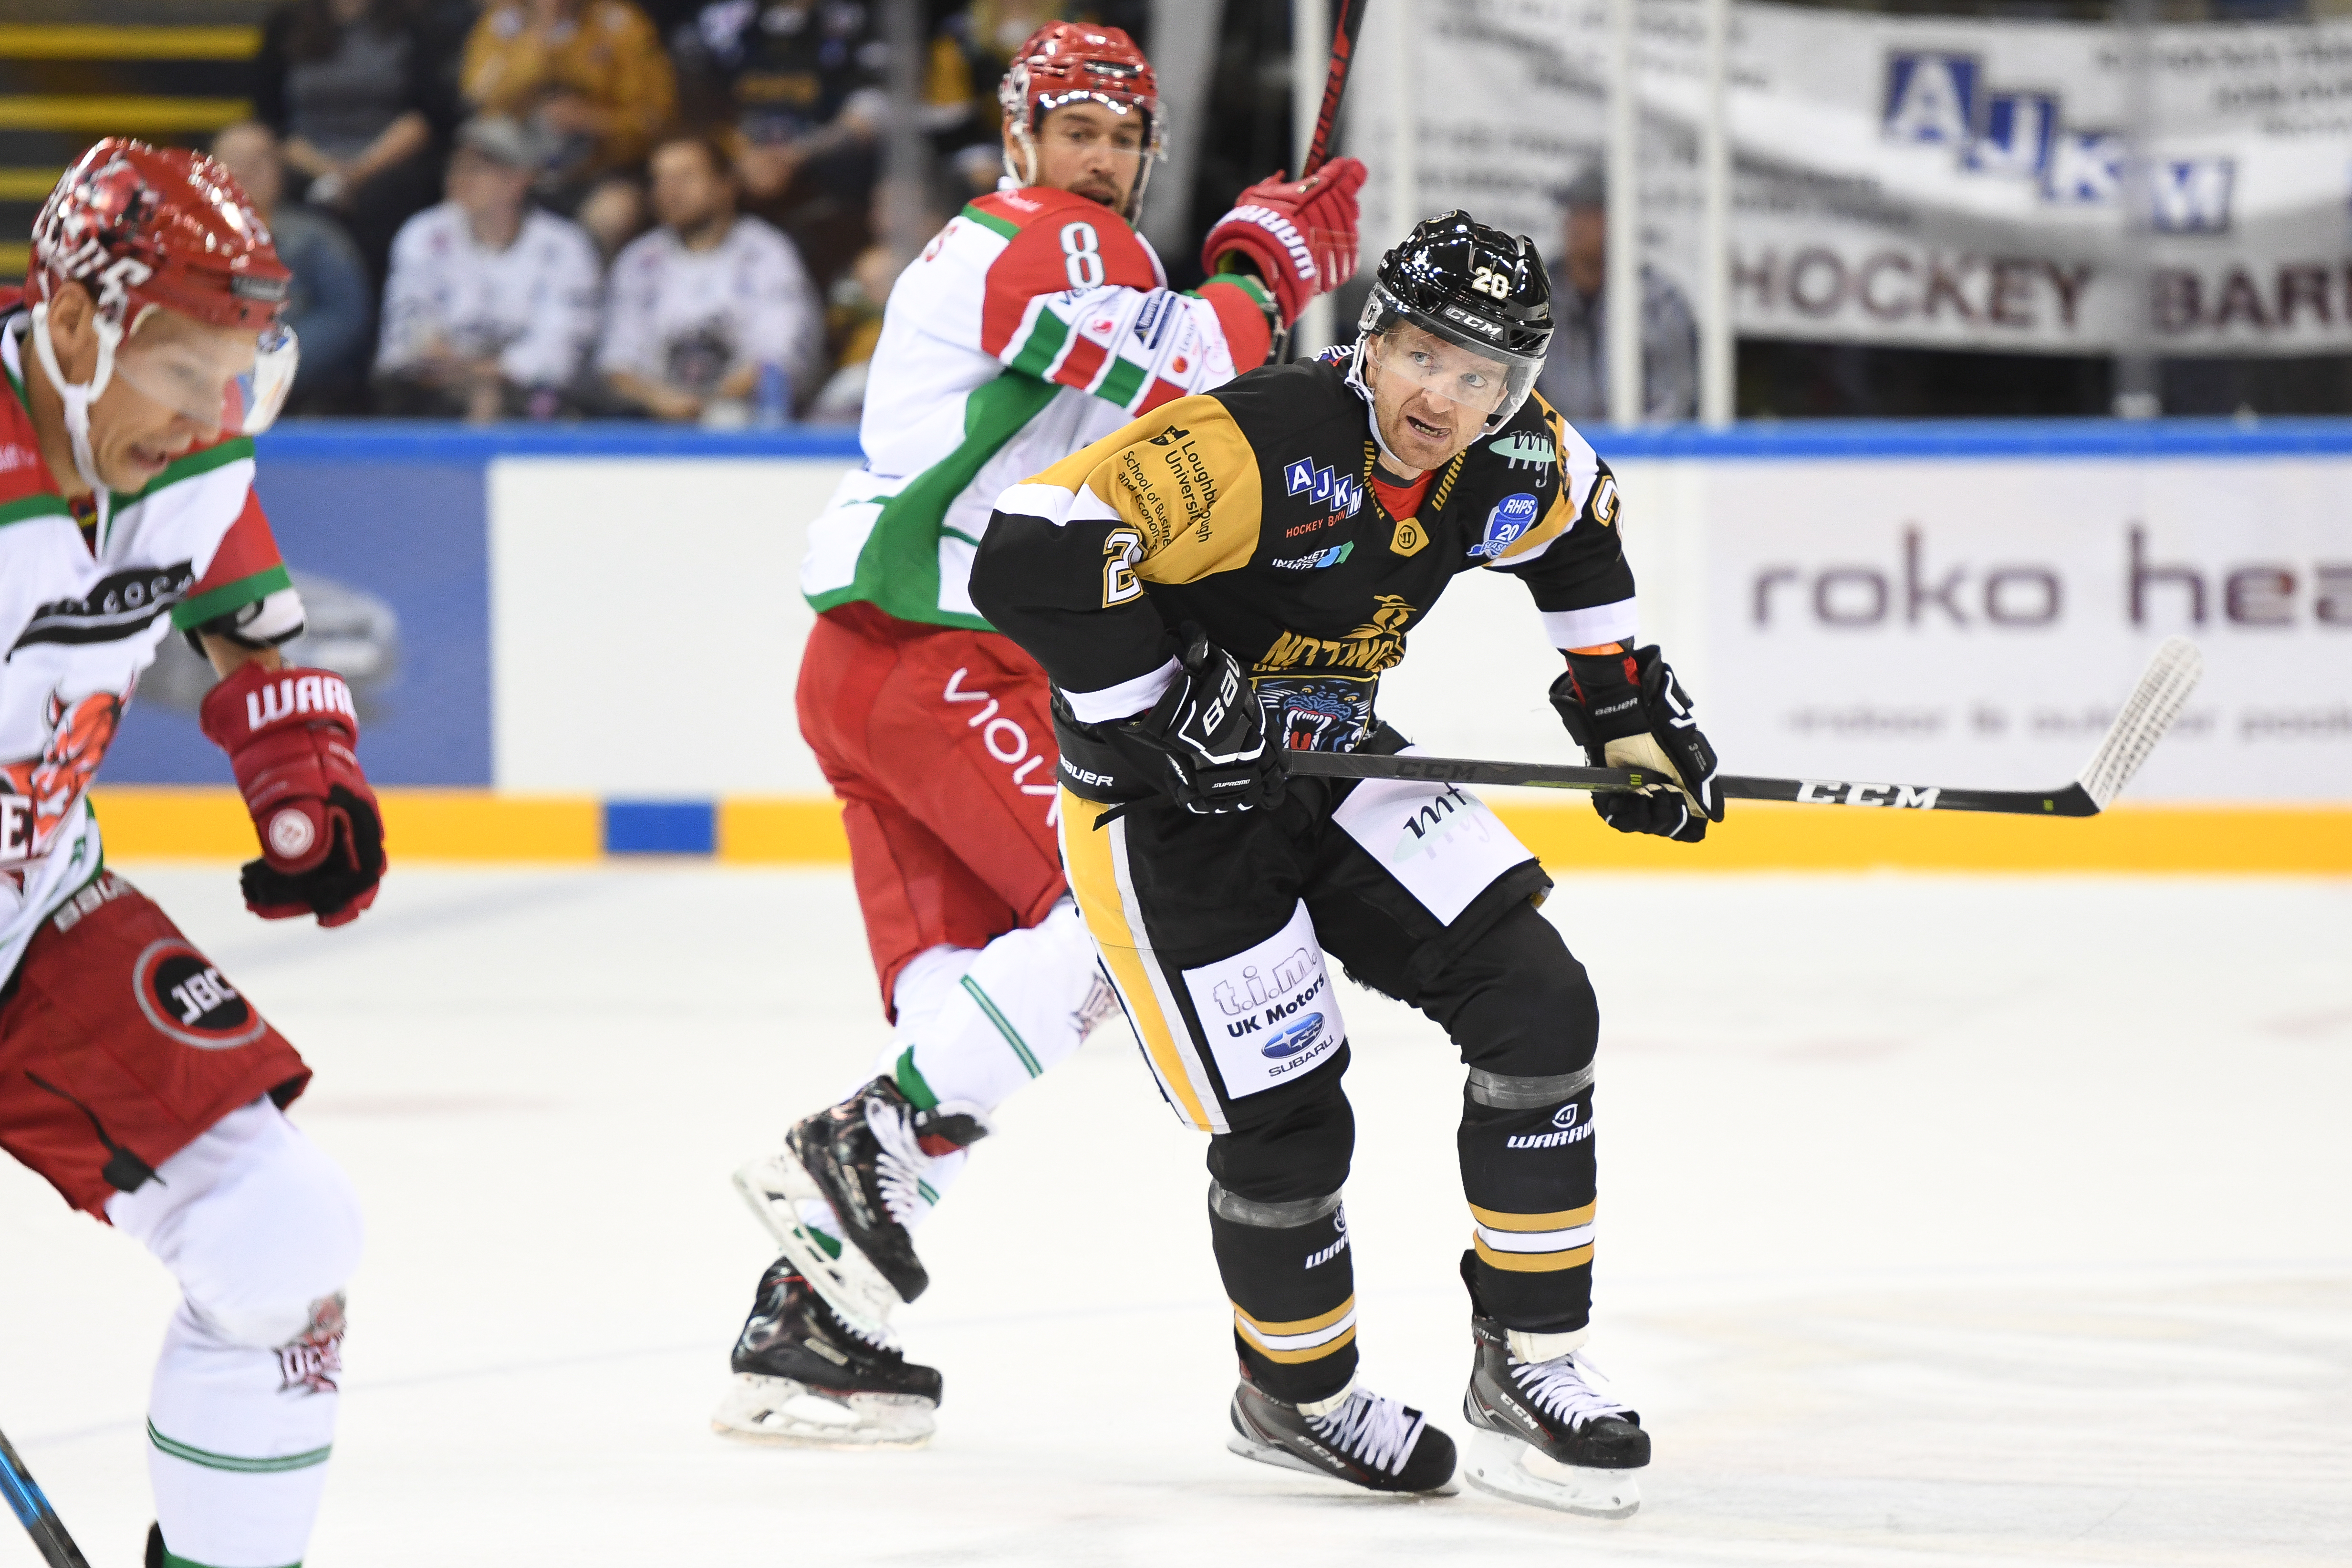 191218 | Challenge Cup Top Image